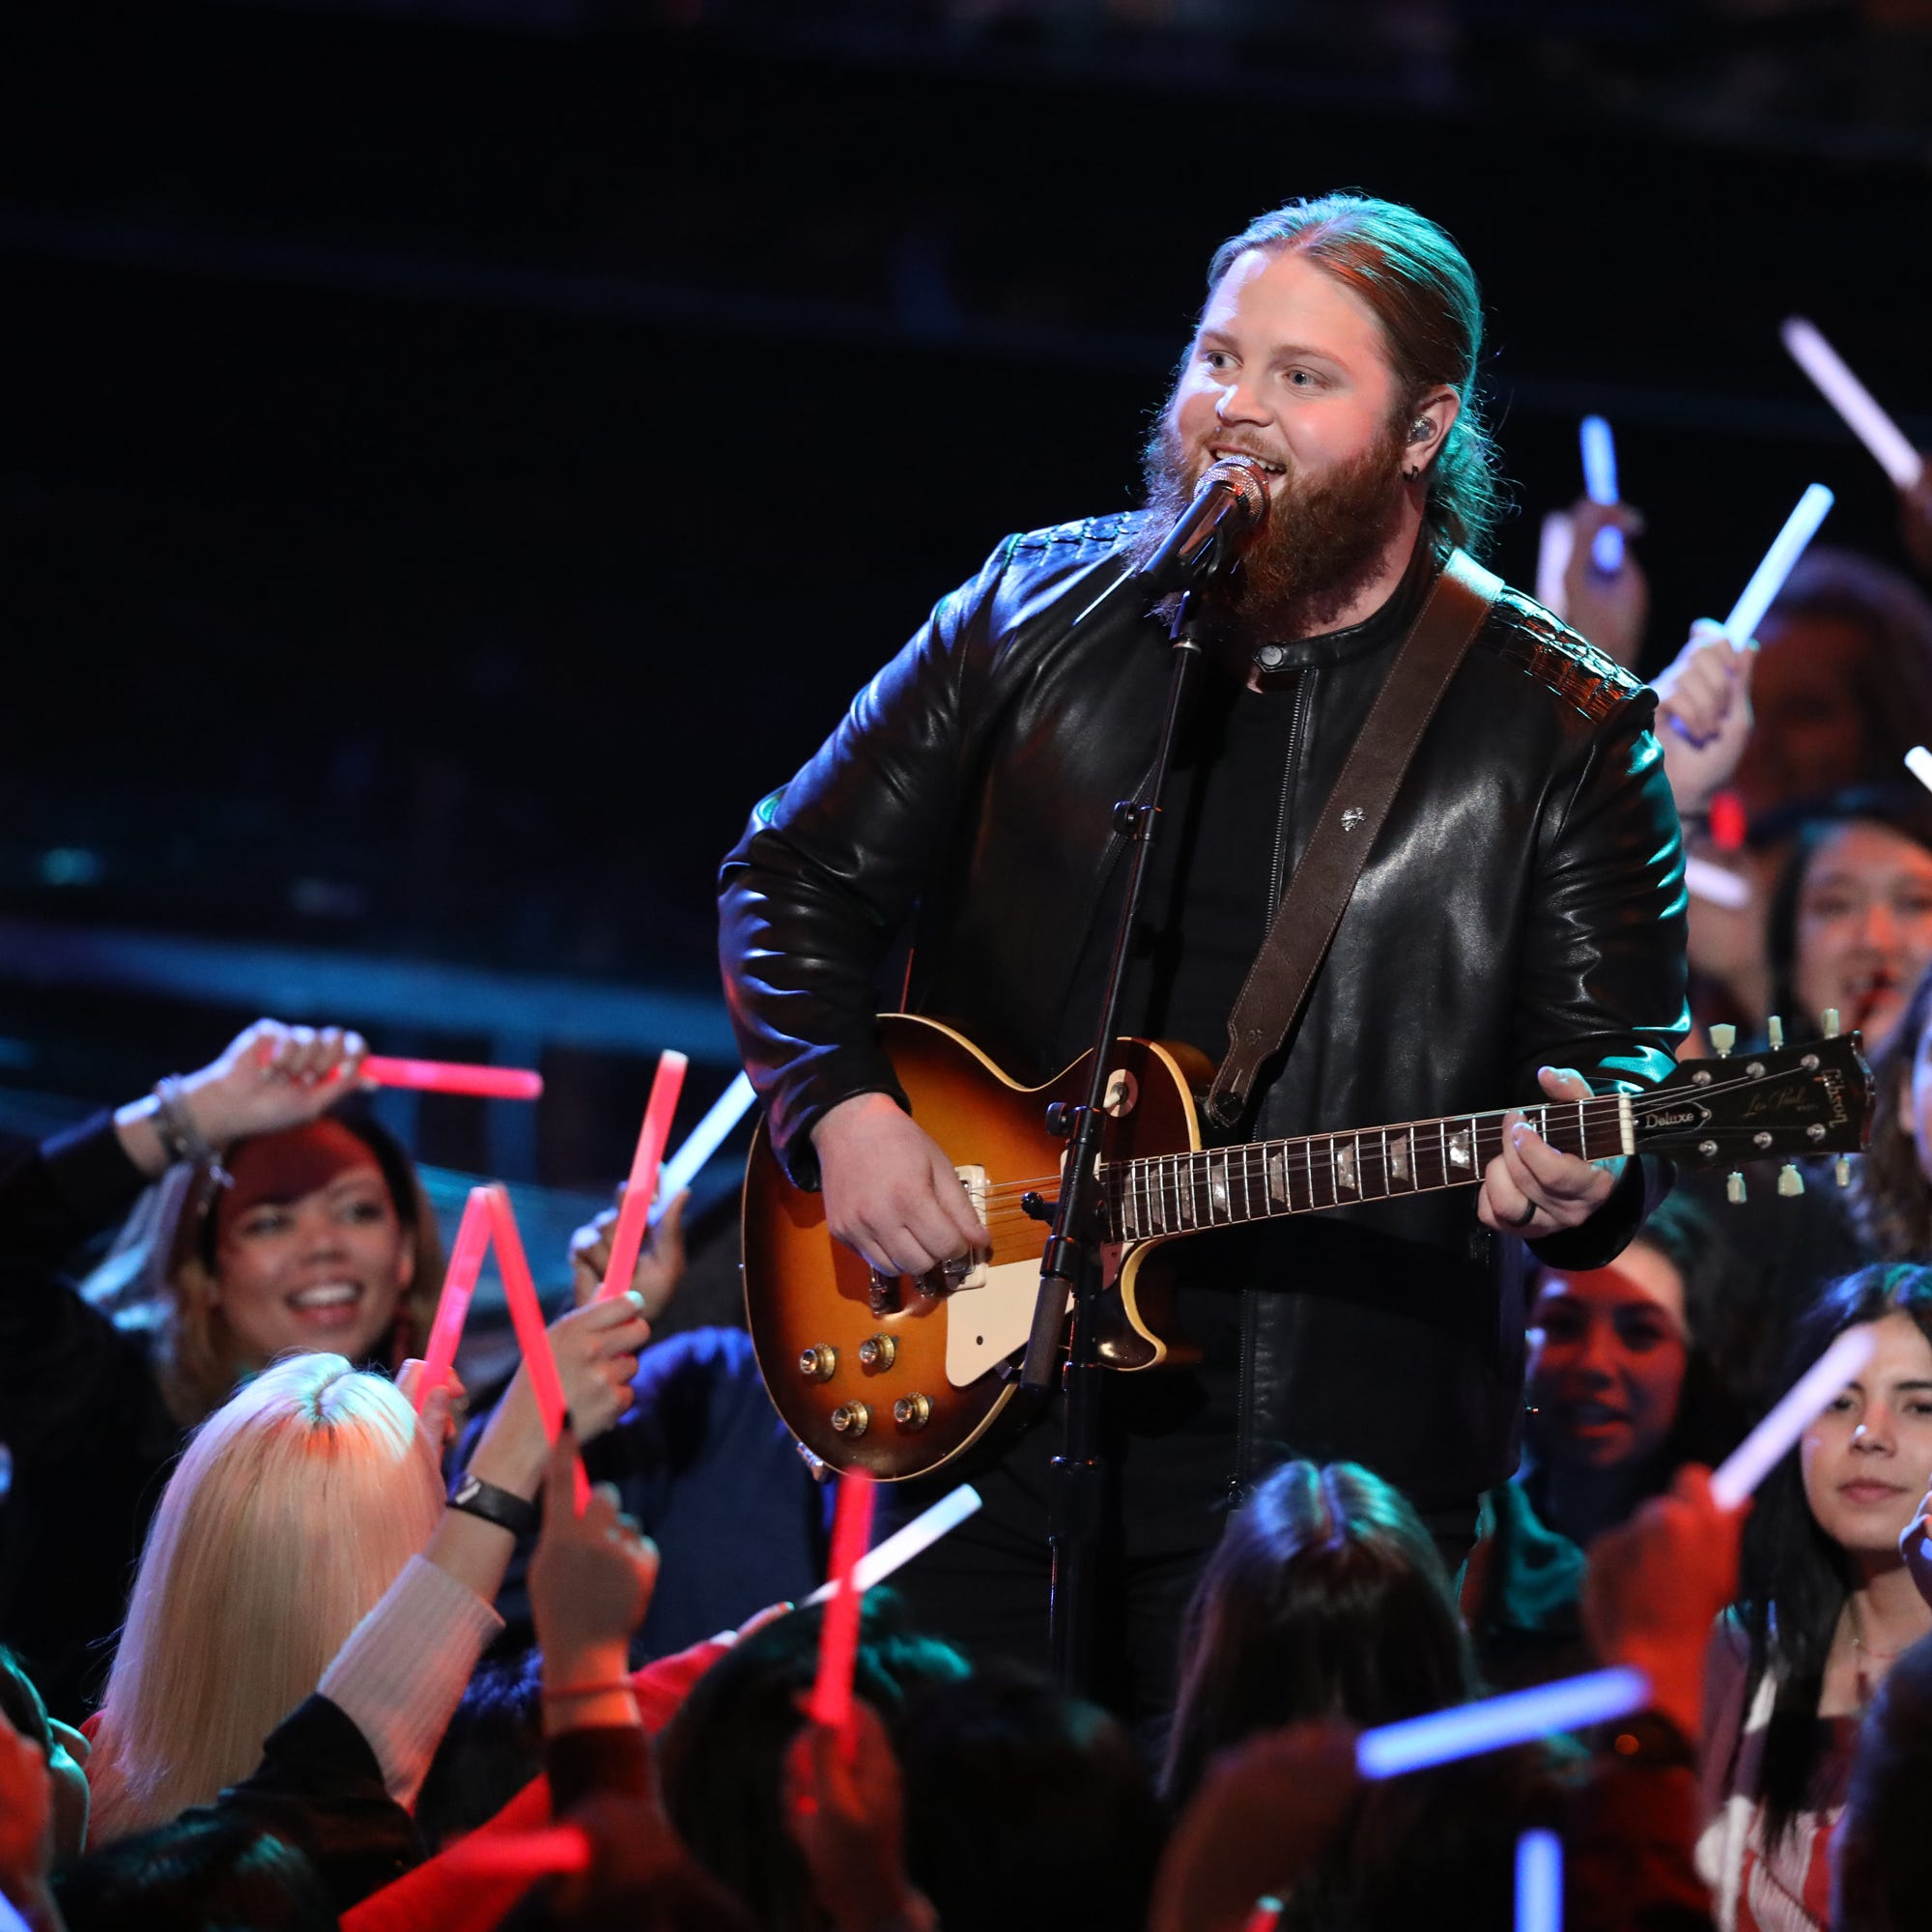 He finished second on 'The Voice.' Now Wisconsin country rocker Chris Kroeze is living the dream.